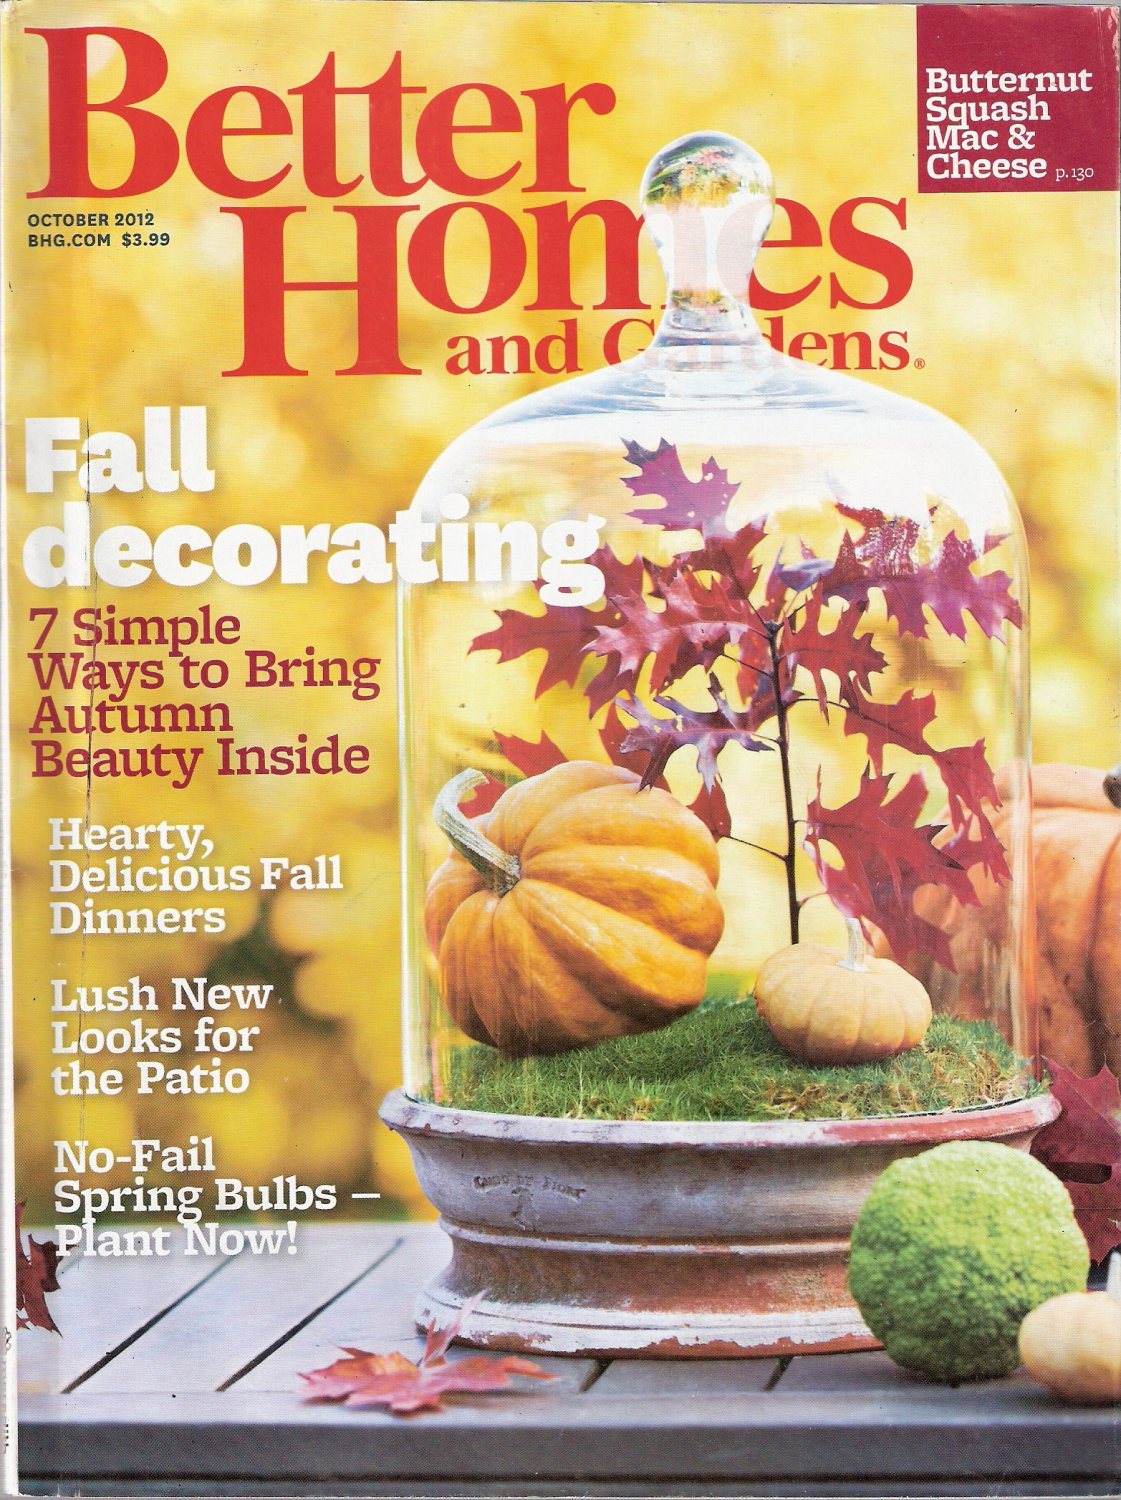 Better Homes And Gardens Magazine June 2017 Edition: Better Homes And Gardens Magazine October 2012 Fall Decorating